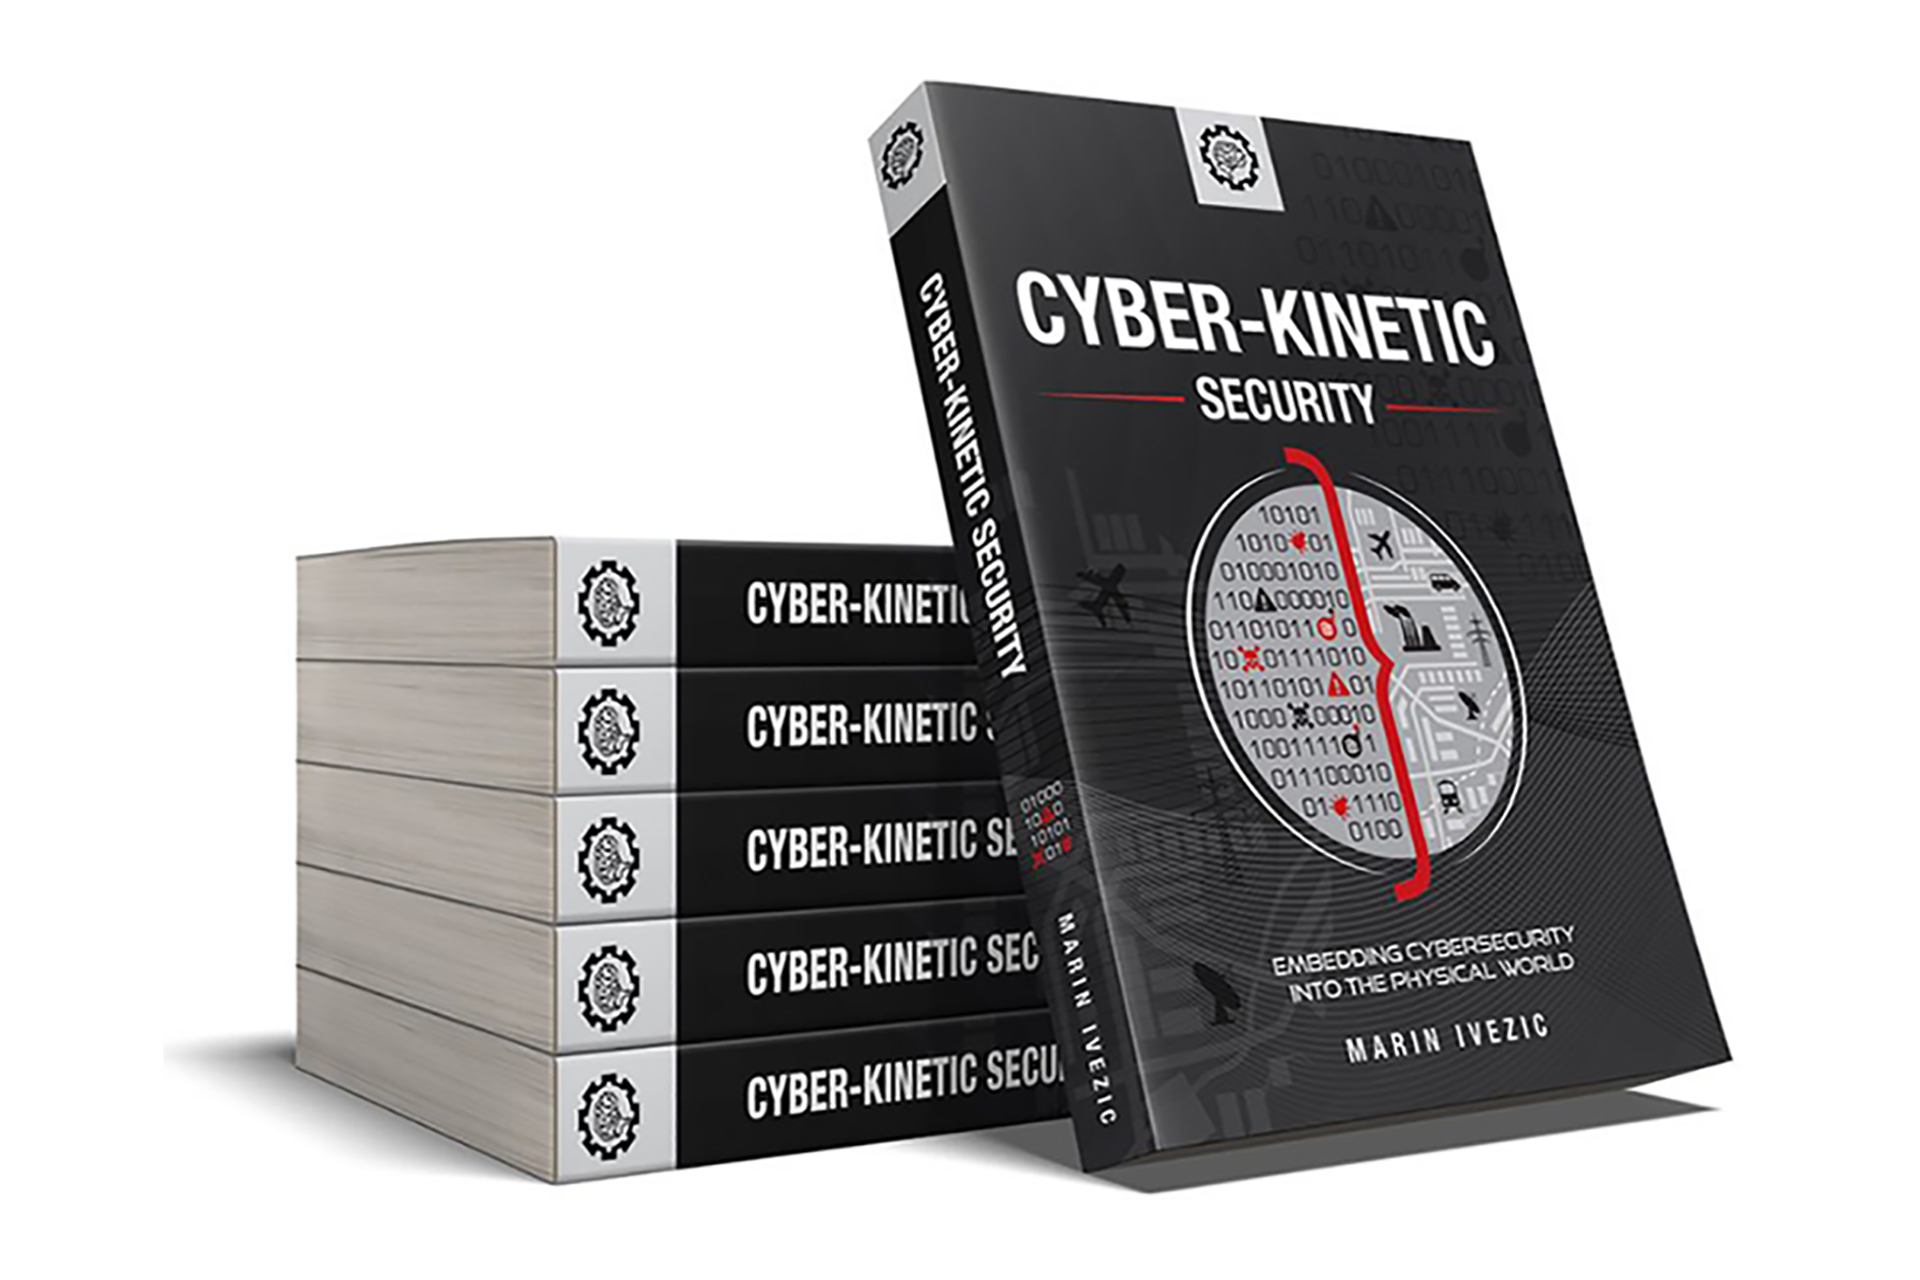 Cyber-Kinetic Security Book